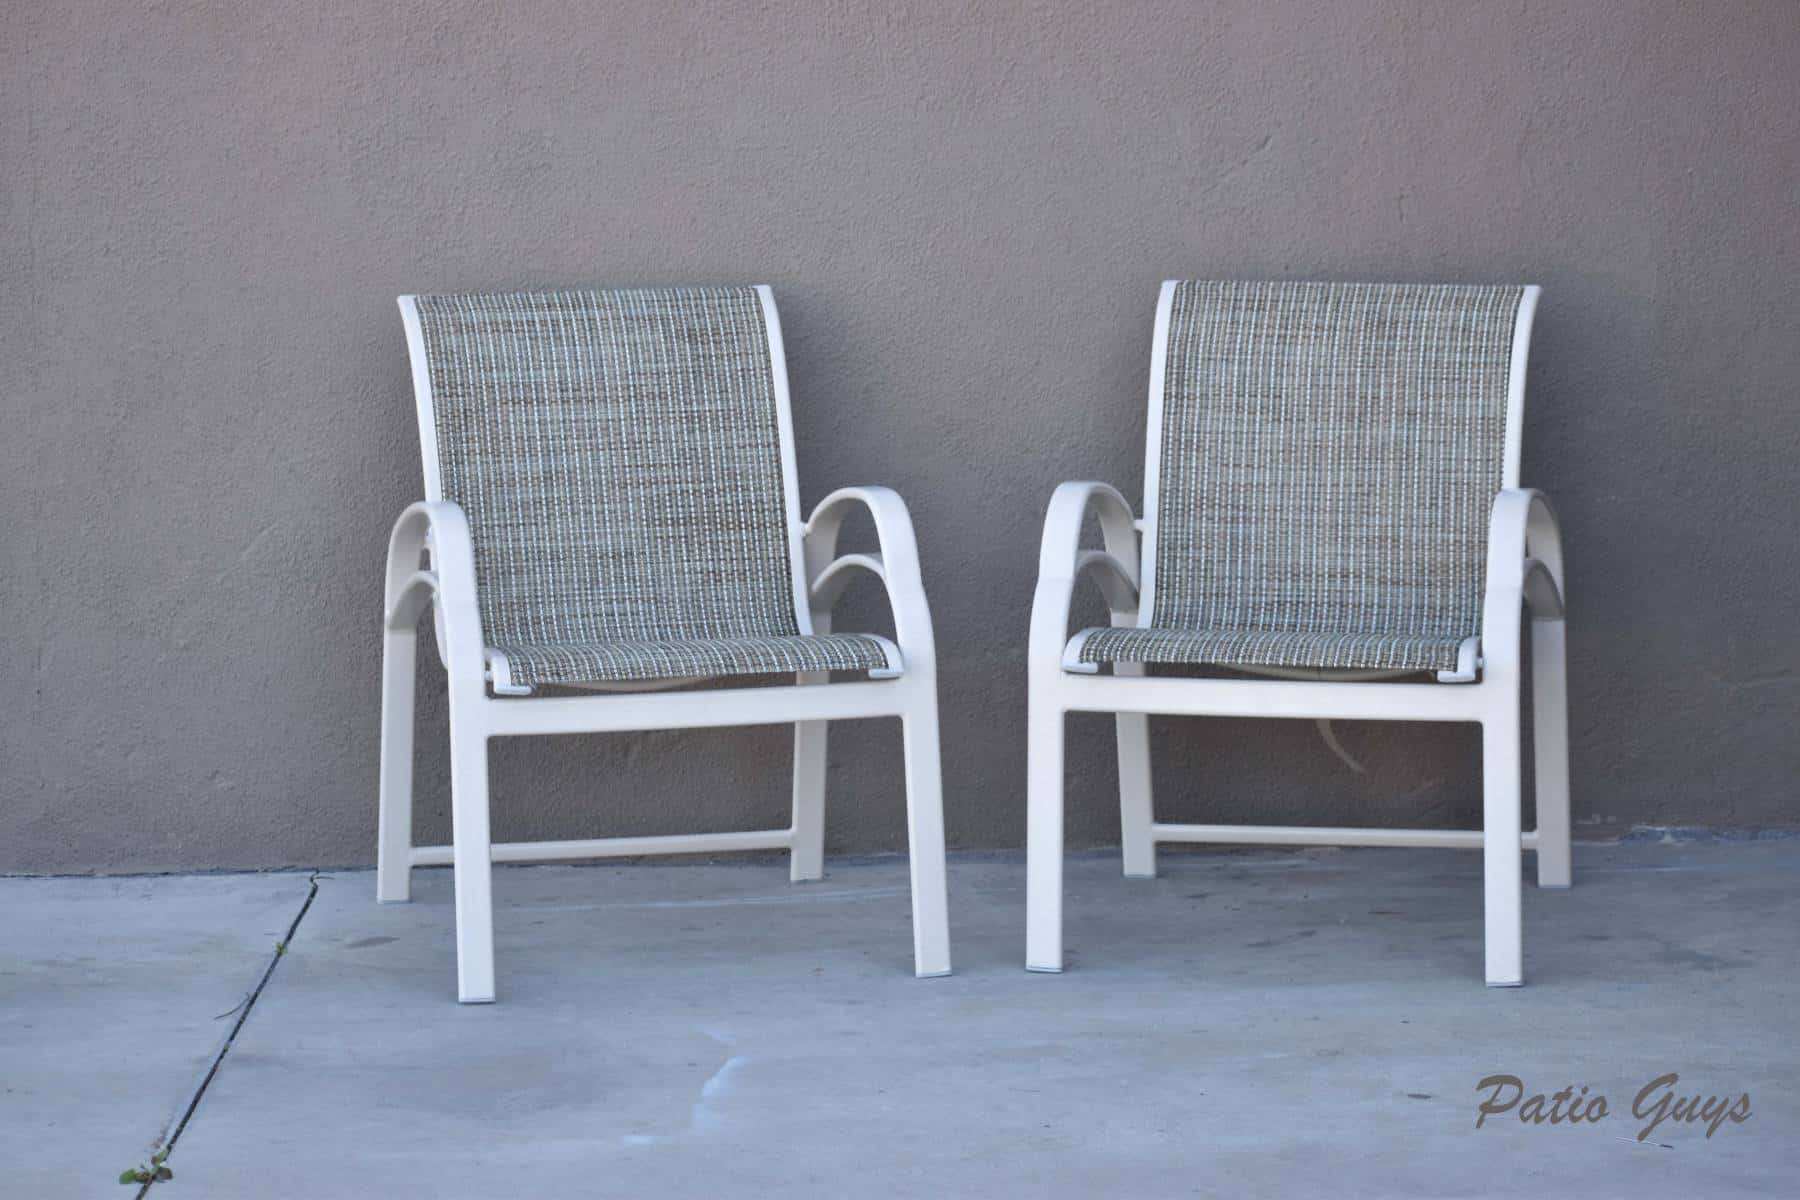 Two sling chairs